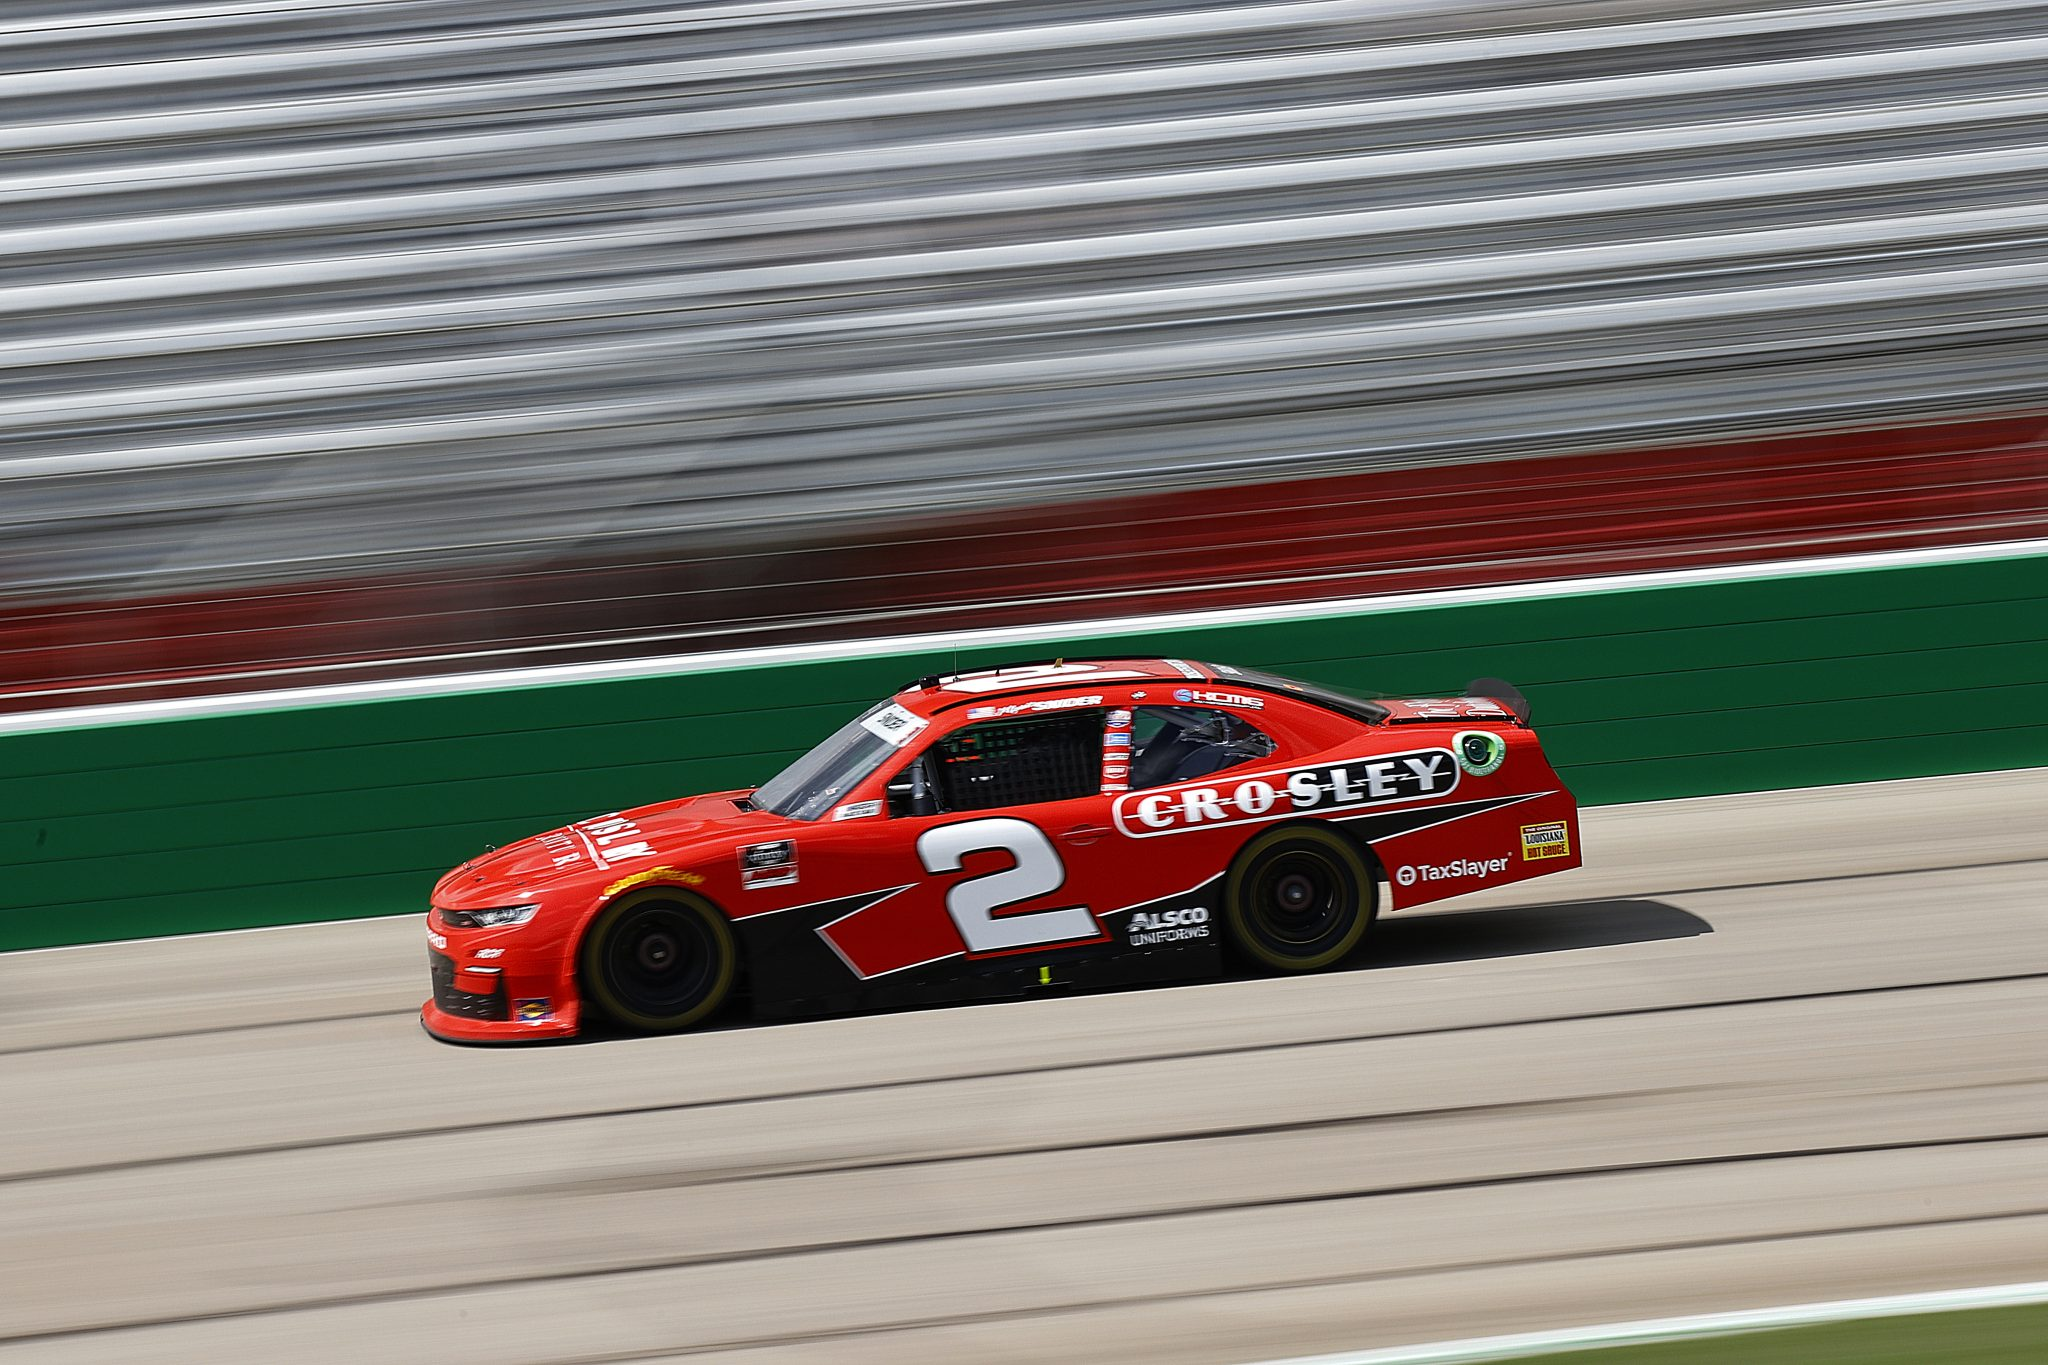 HAMPTON, GEORGIA - JULY 10: Myatt Snider, driver of the #2 Crosley Furniture Chevrolet, drives during the NASCAR Xfinity Series Credit Karma Money 250 at Atlanta Motor Speedway on July 10, 2021 in Hampton, Georgia. (Photo by Jared C. Tilton/Getty Images) | Getty Images